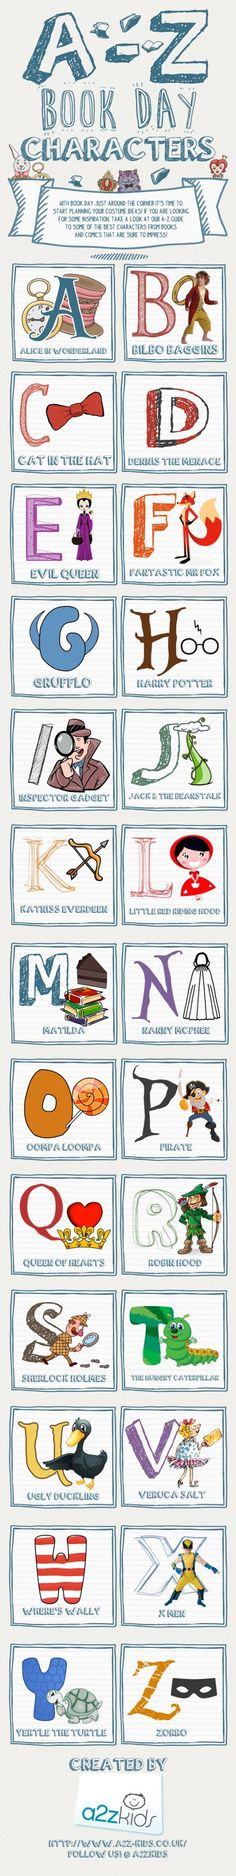 Prepared by A2Z Kids, they have put together a fantastic A-Z guide of  literary favorites.